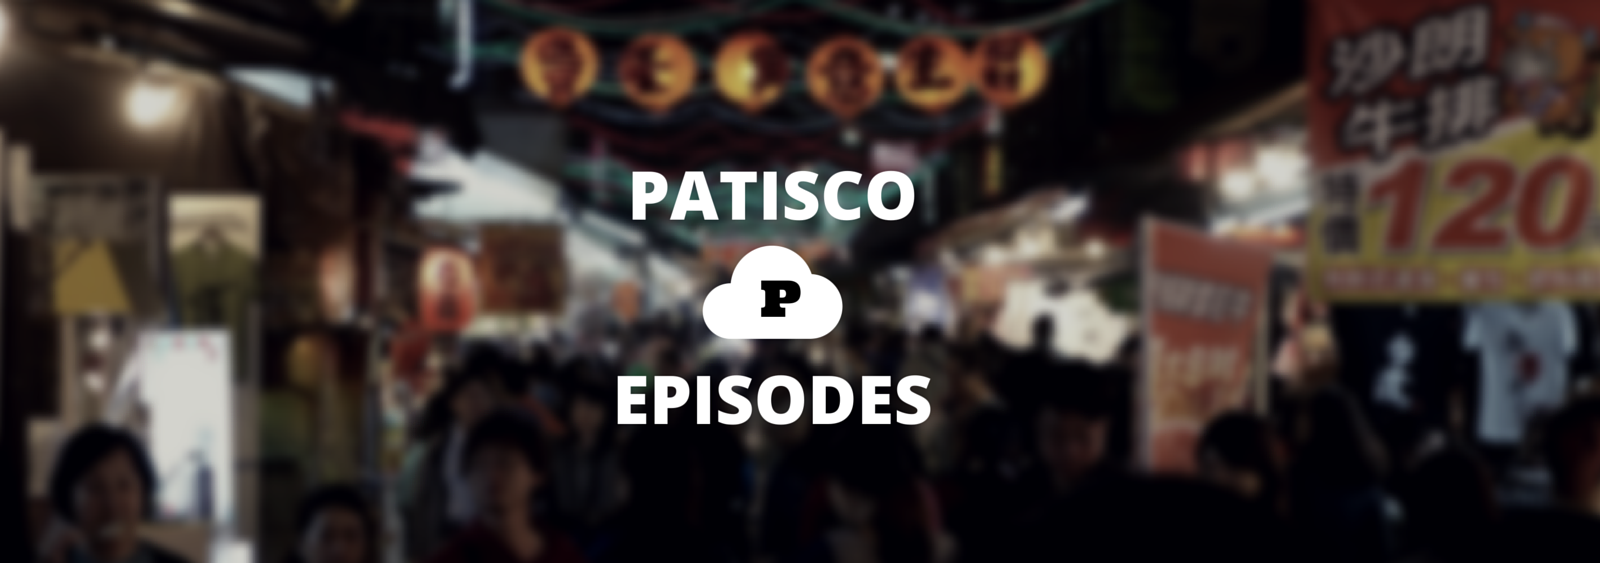 The Patisco Episodes